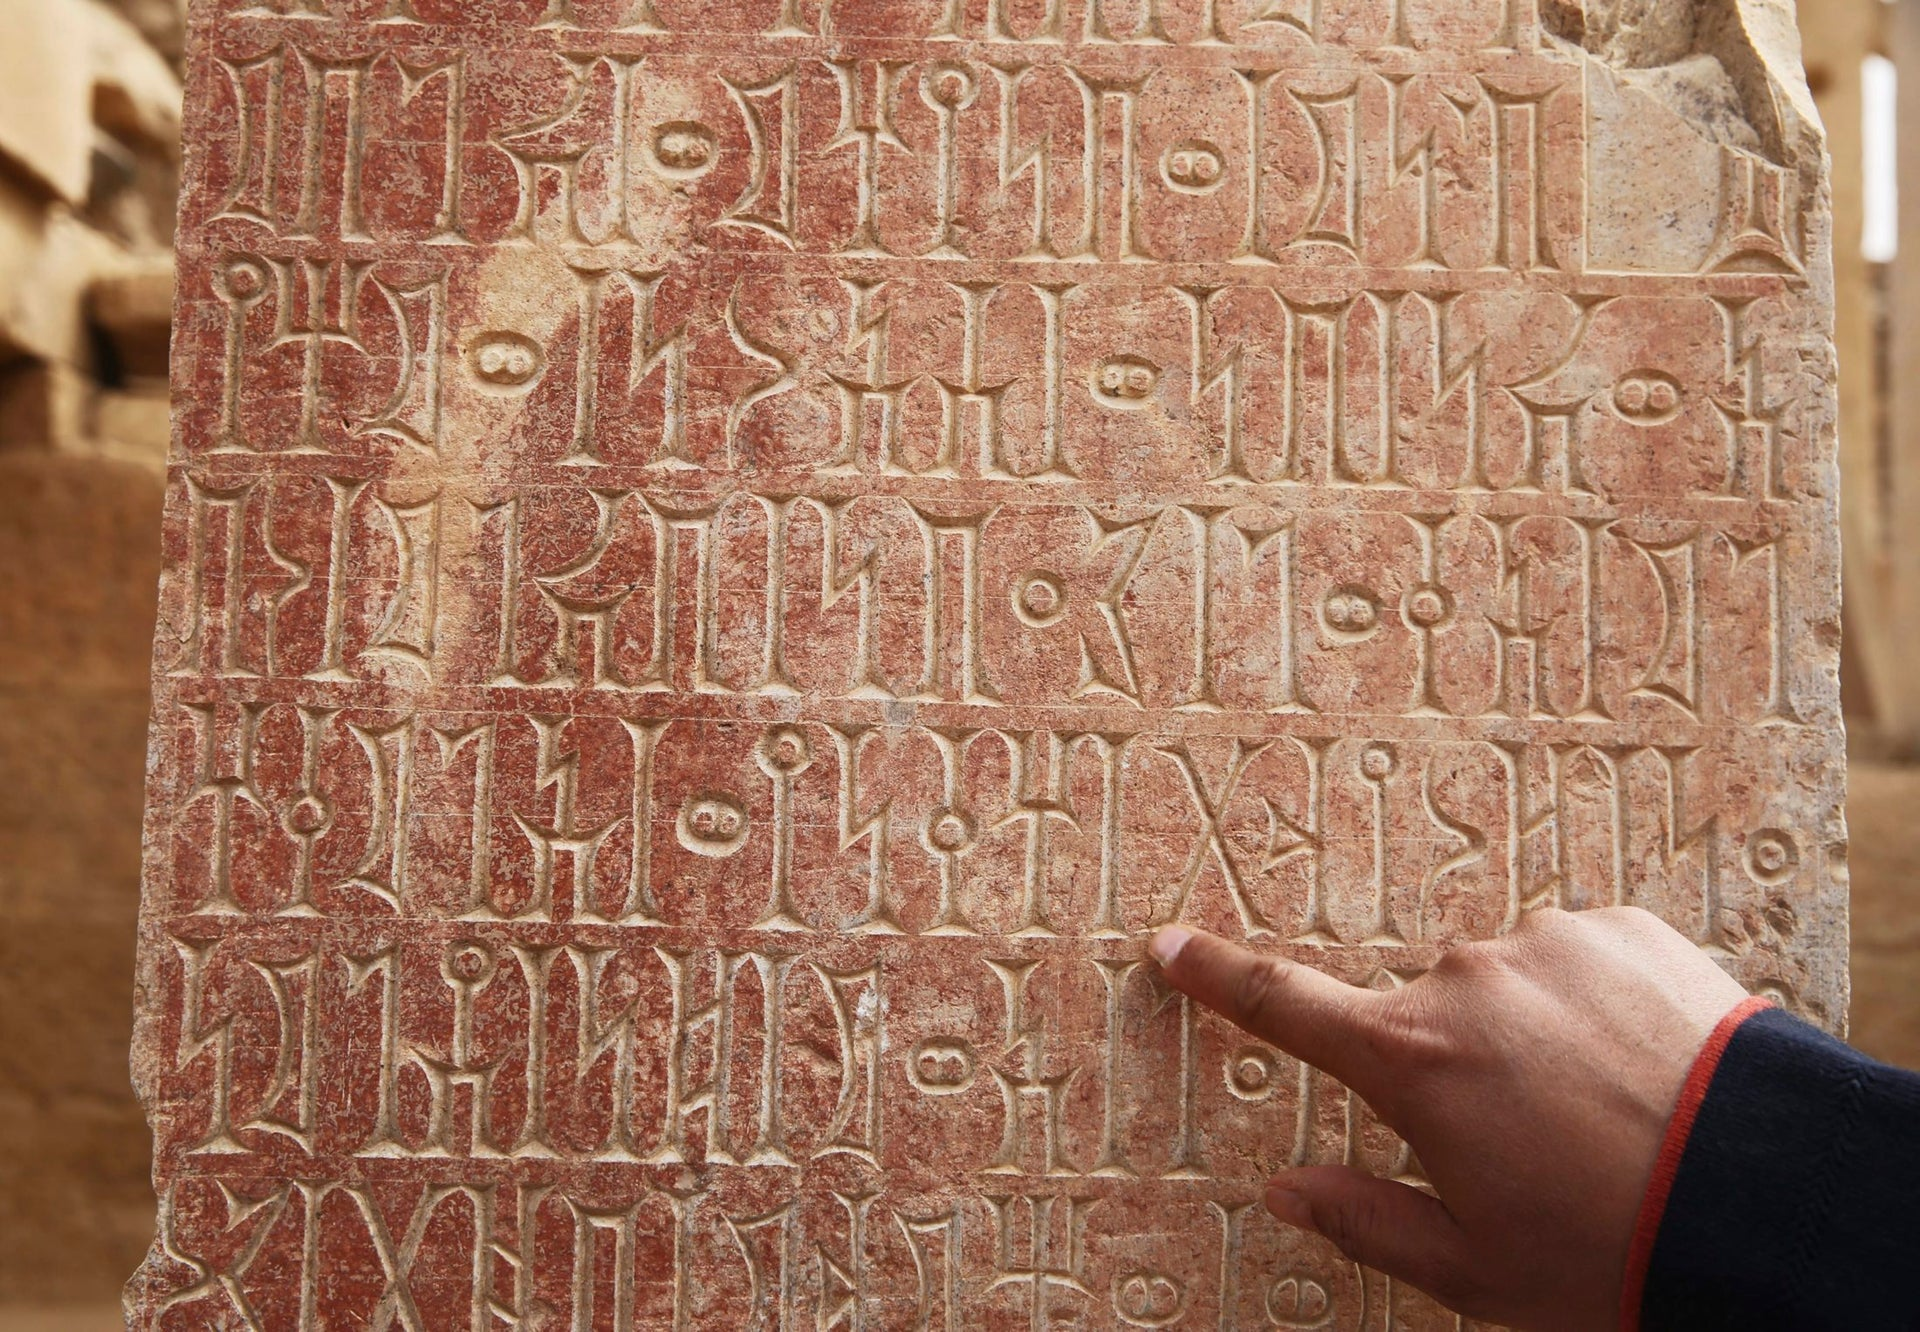 An official points to ancient South Arabian script at the Awwam Temple, also known as the Mahram Bilqis, in Marib, Yemen, Feb. 3, 2018.